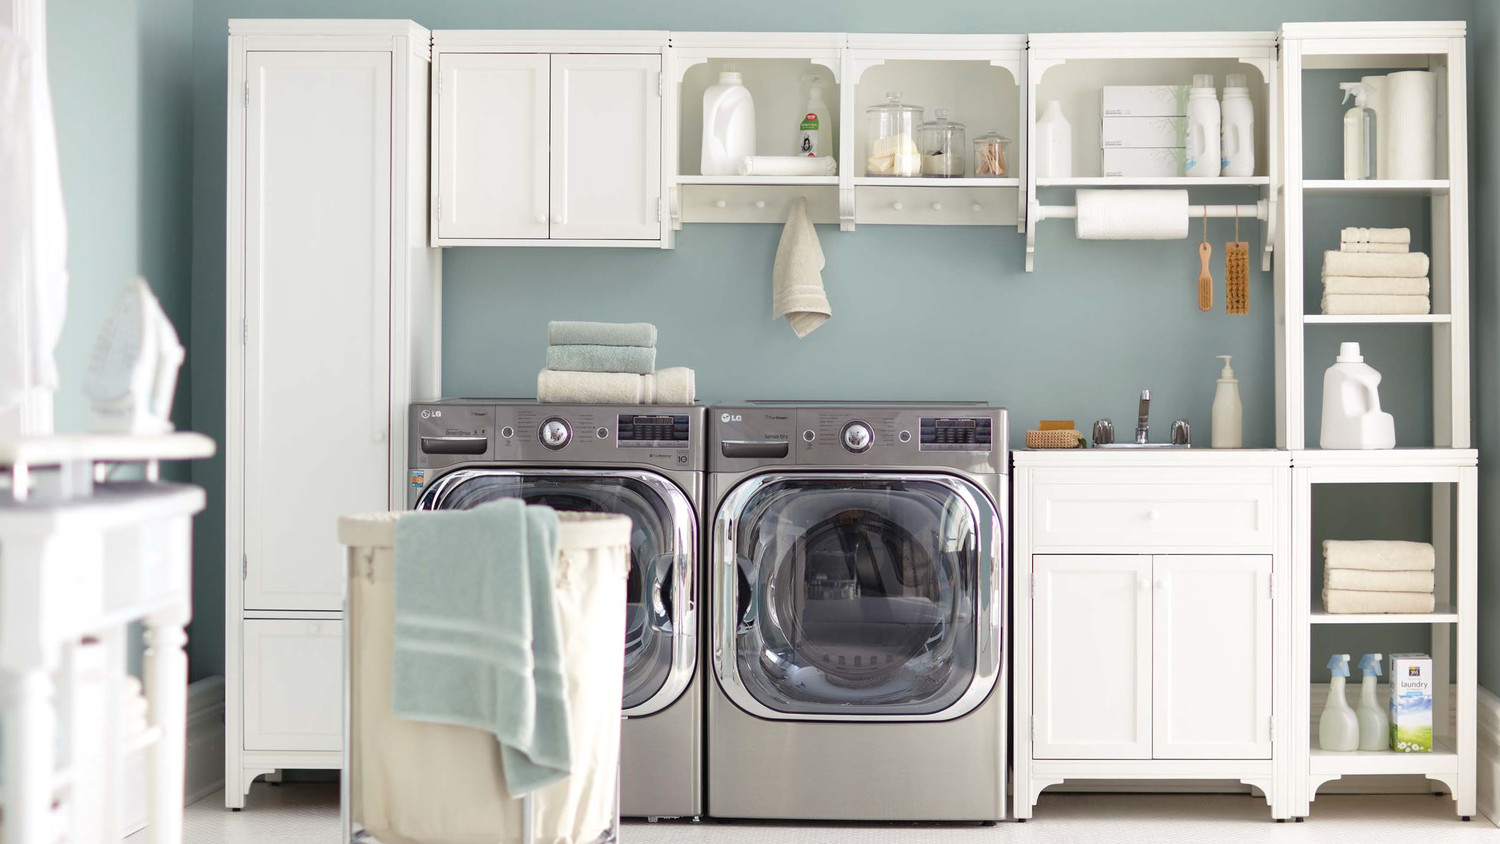 12 essential laundry-room organizing ideas | martha stewart a Laundry Room